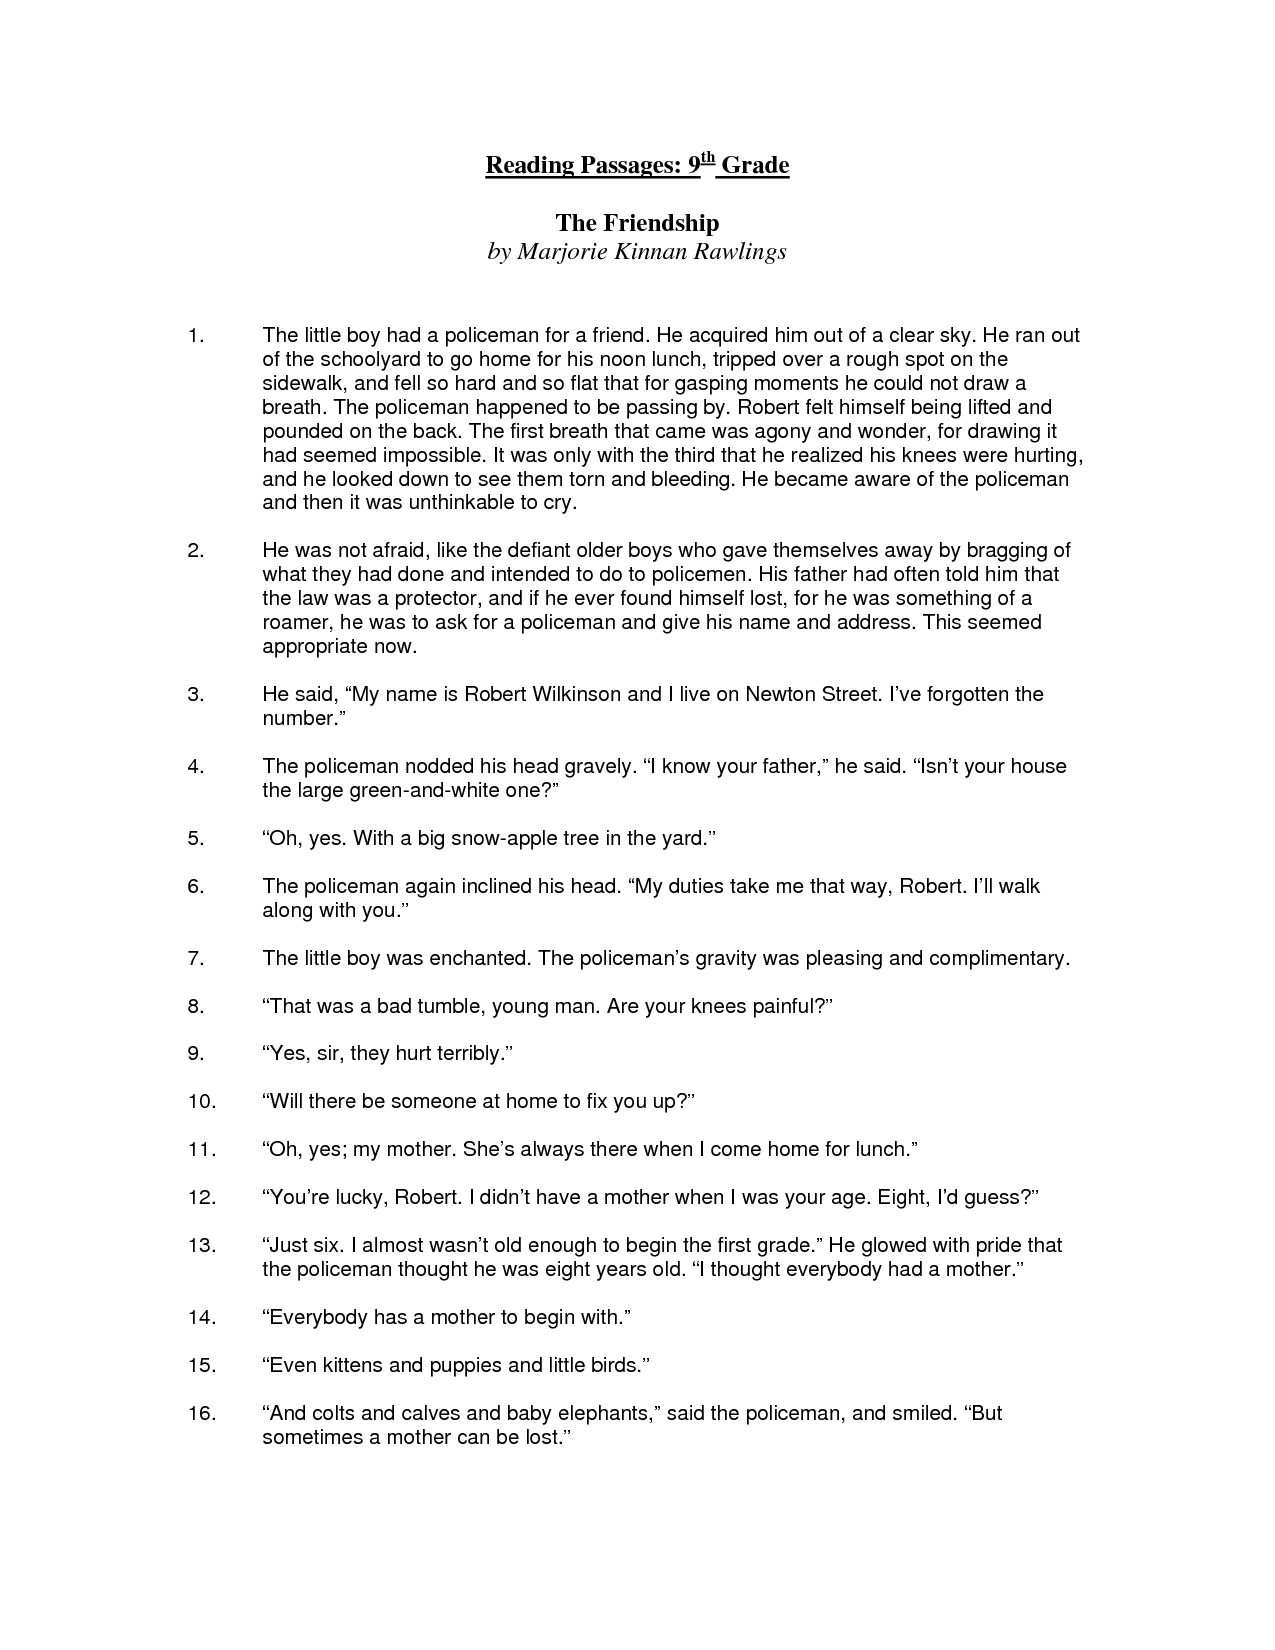 Reading Comprehension Worksheets 6th Grade Free Printable